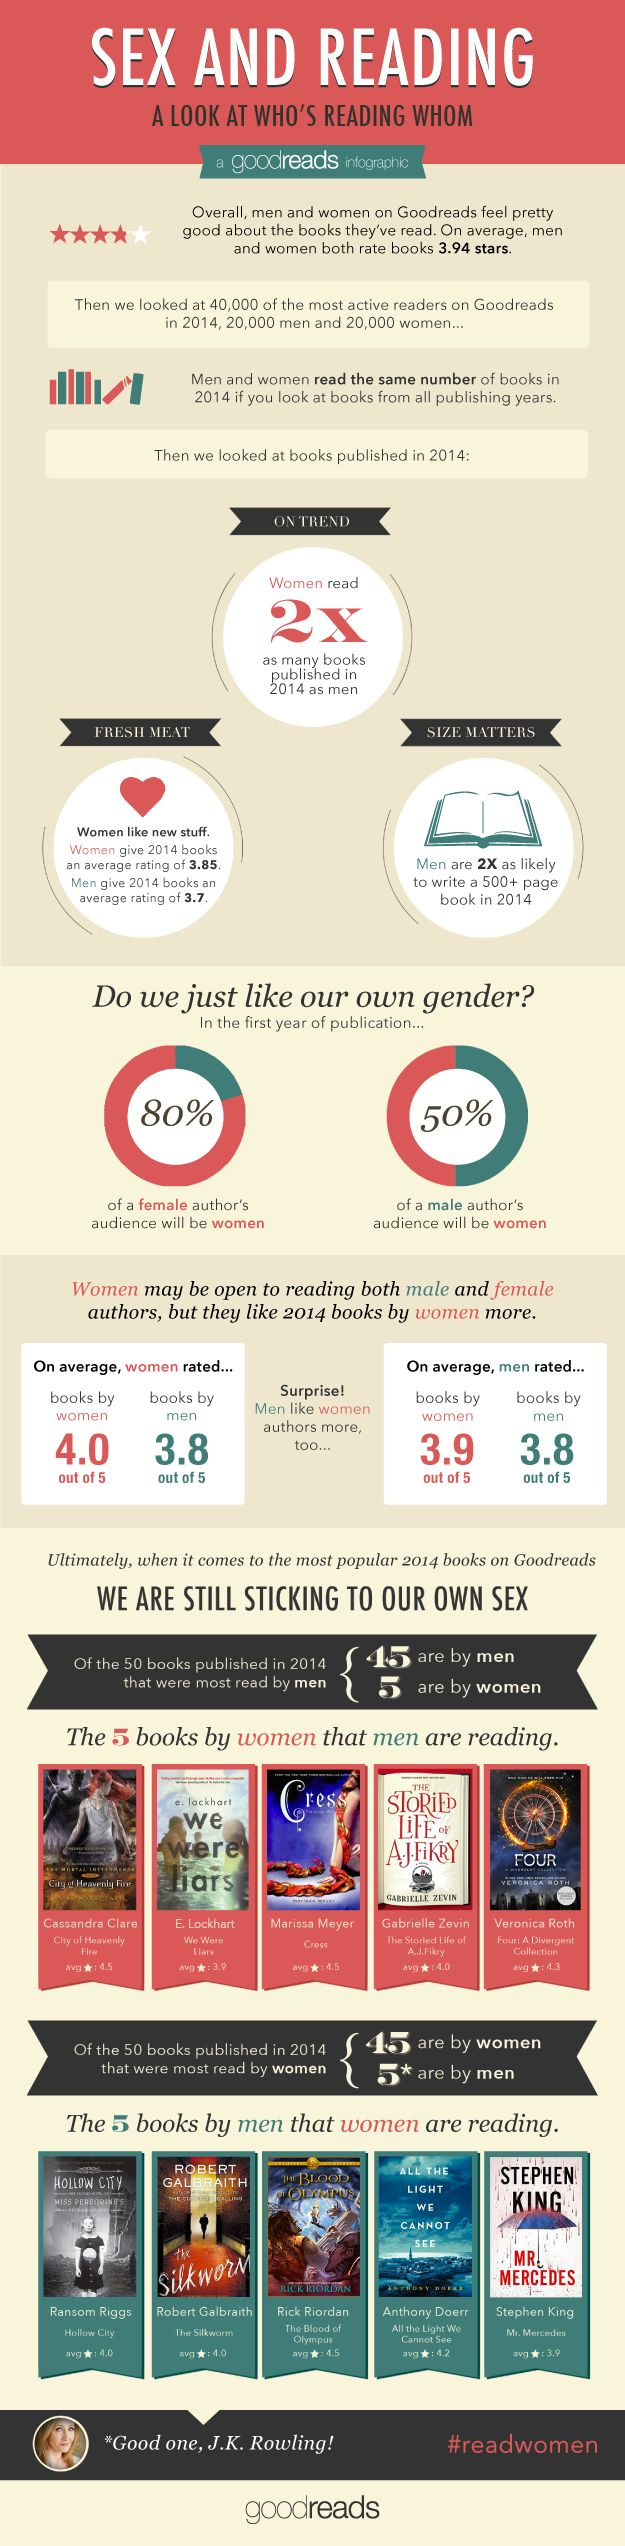 Men & women readers stick to authors of their own sex. #book #survey